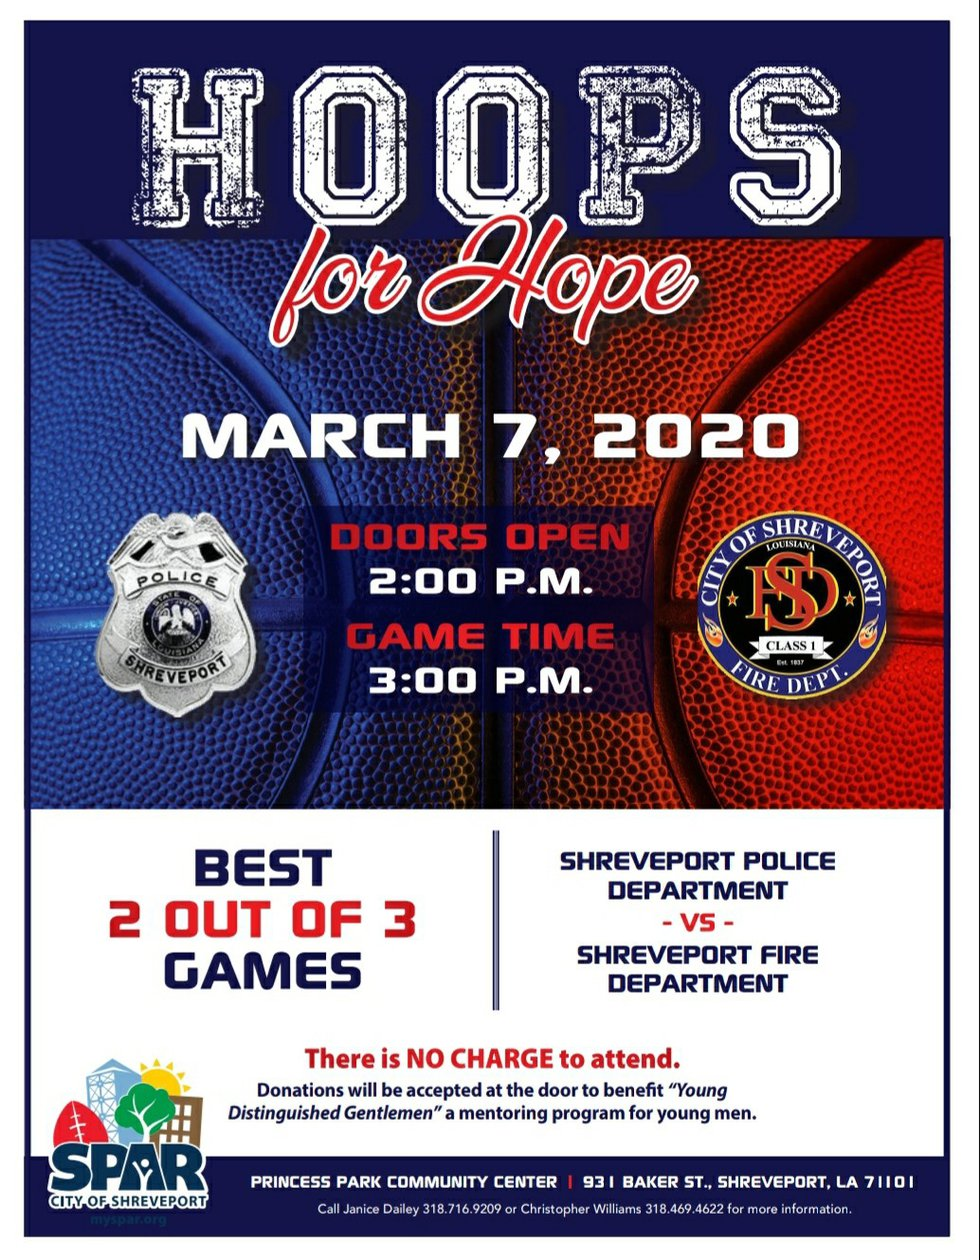 'Hoops for Hope' is March 7 at 2pm at Princess Park Community Center